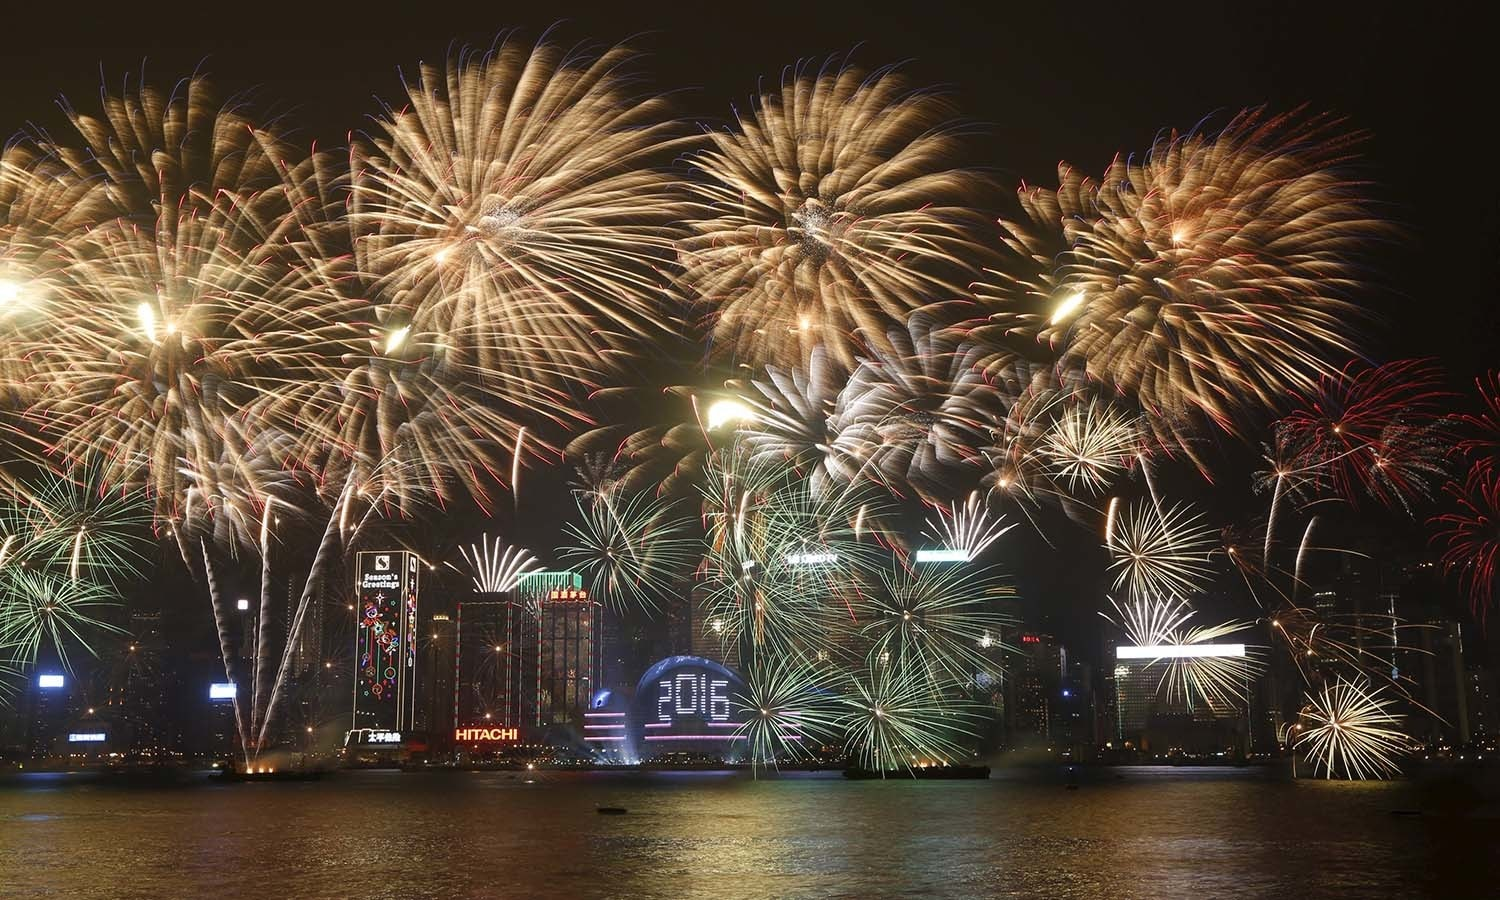 Fireworks explode over Victoria Harbour during a pyrotechnic show to celebrate the New Year in Hong Kong, China January 1, 2016. REUTERS/Tyrone Siu